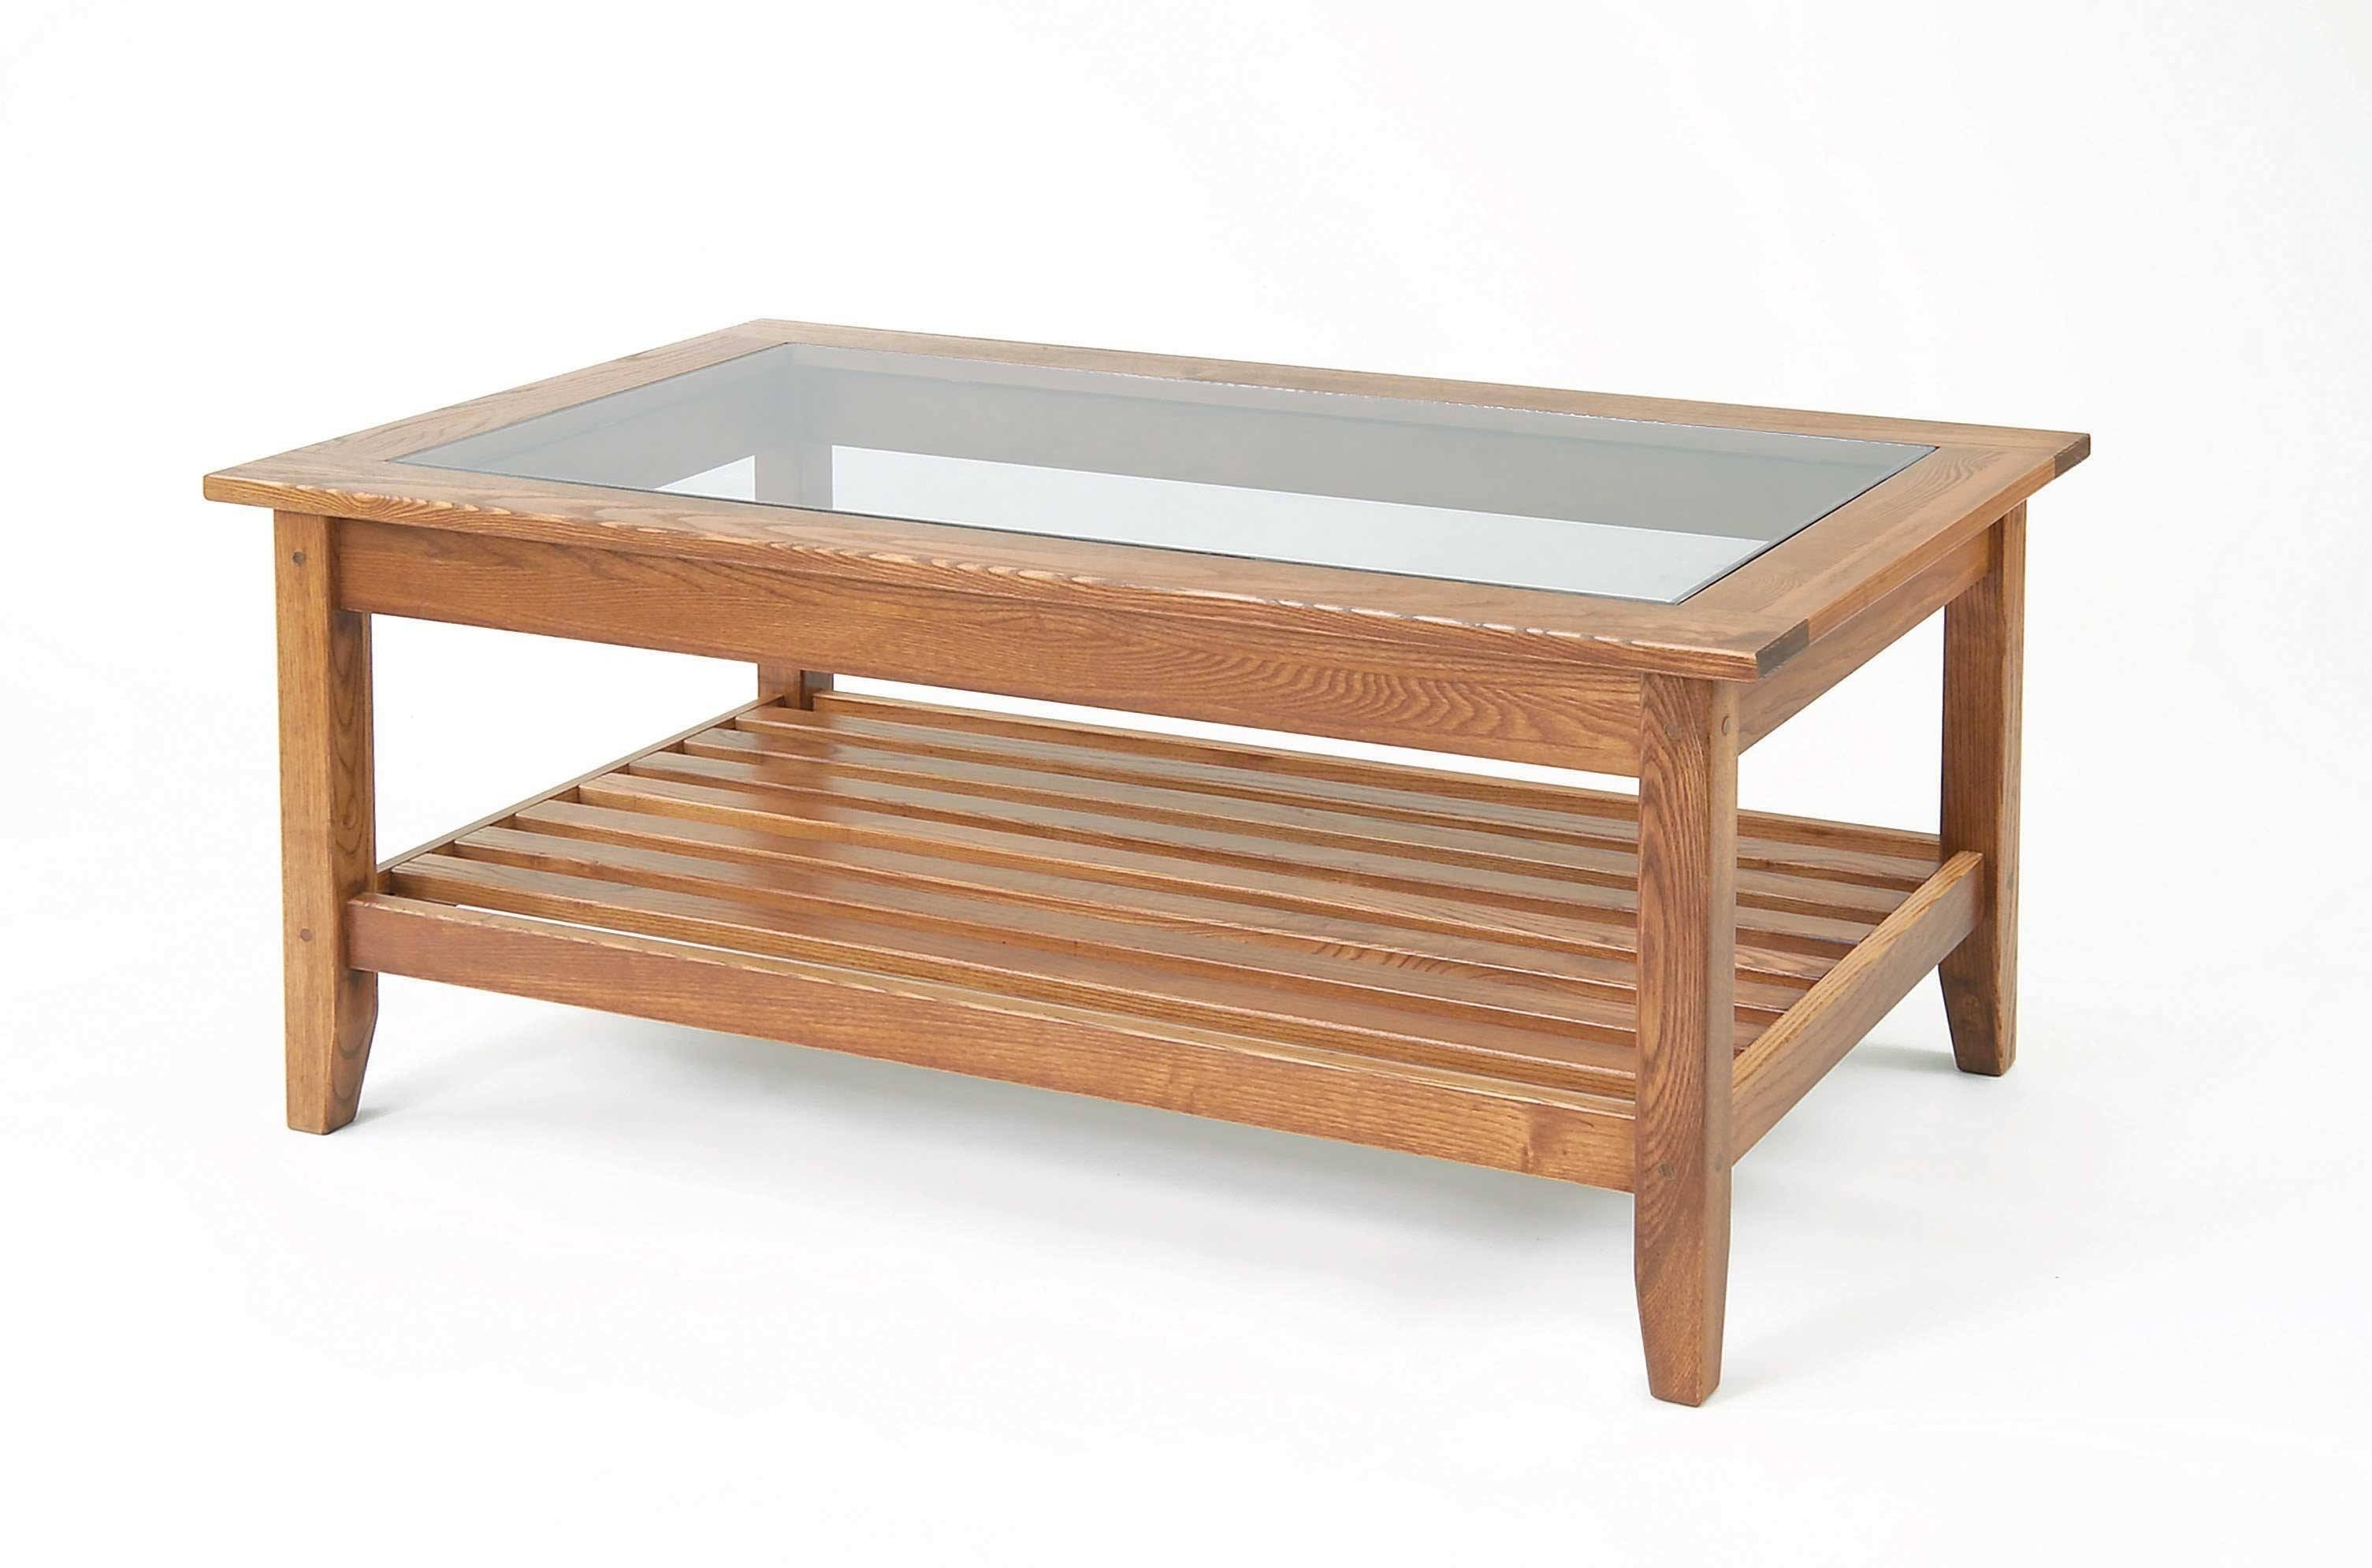 Stylized Regardto Glass 2018 Glass Pottery Barn Coffee Tables Pottery Barn Coffee Table From Friends Pottery Barn Coffee Table Ottoman Coffee Table Glass Coffee Tables Wood Table houzz 01 Pottery Barn Coffee Table